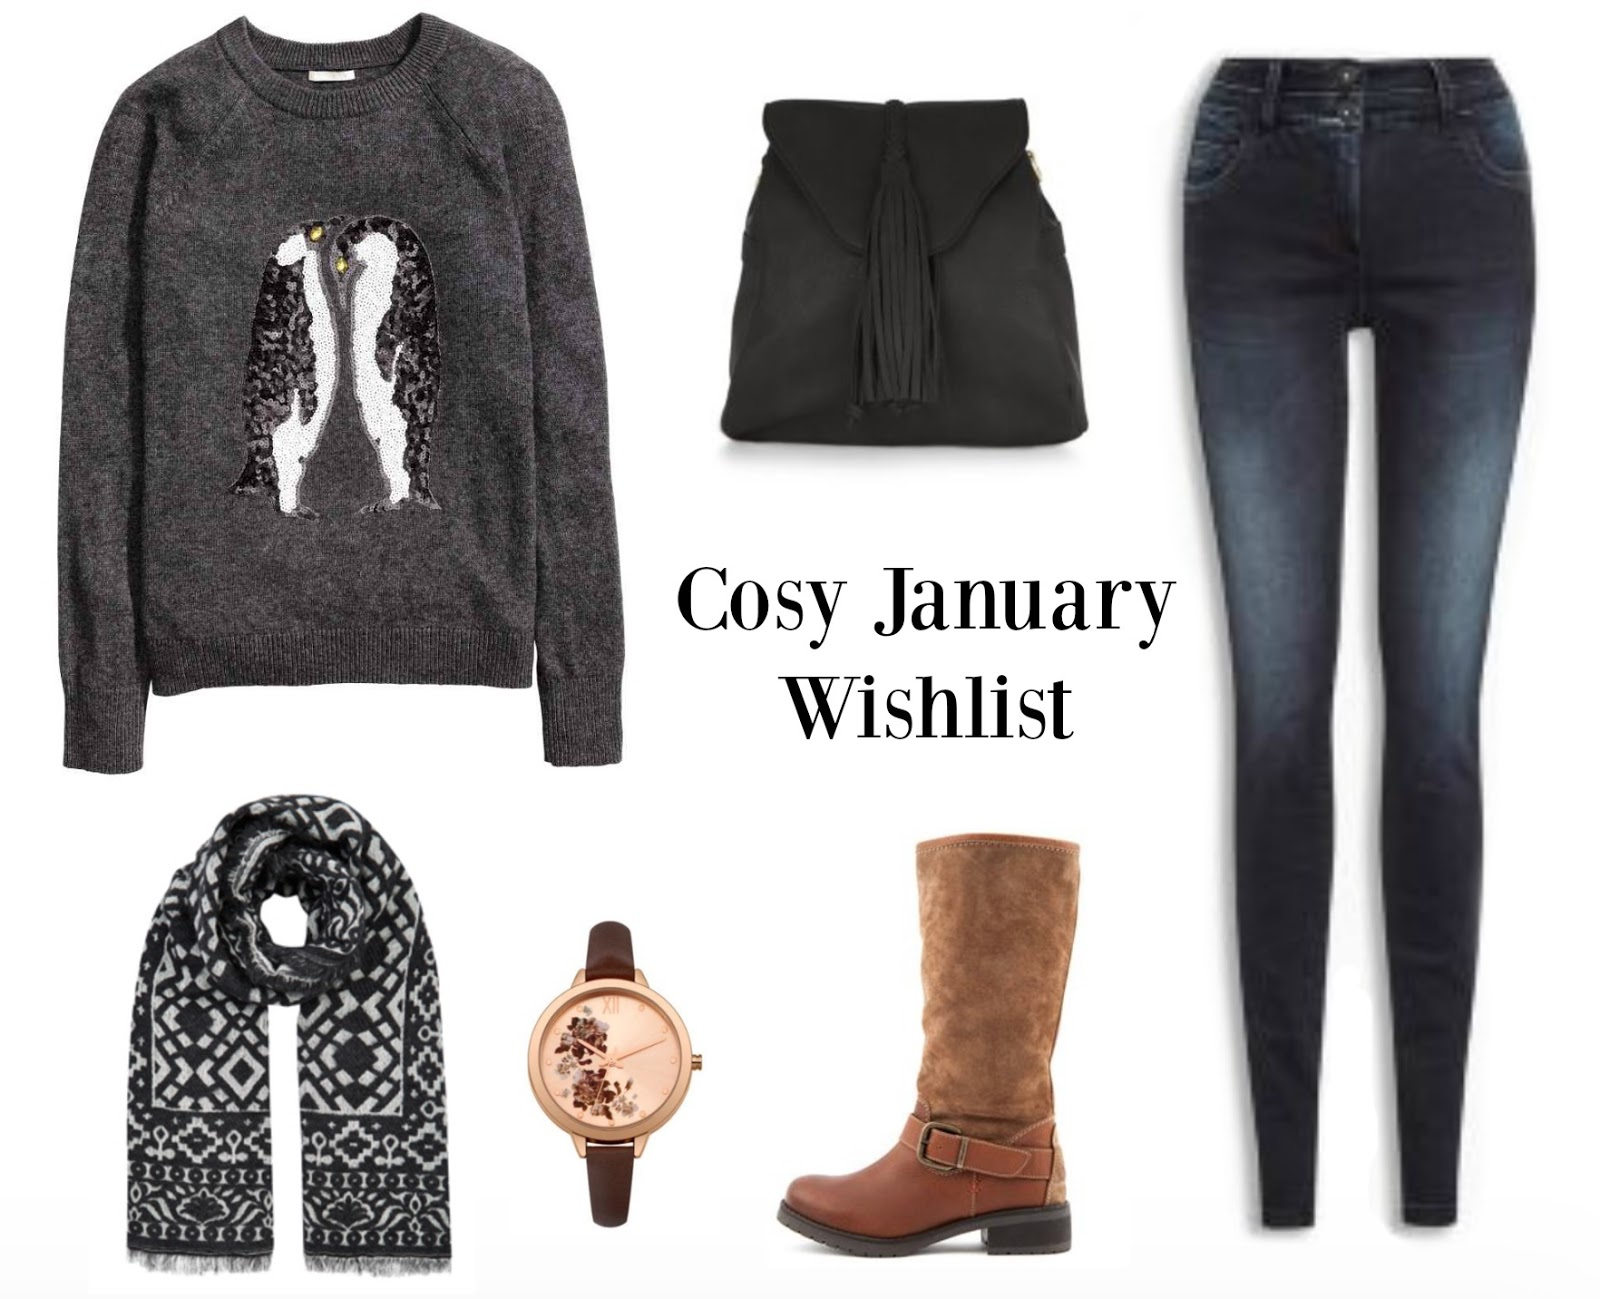 Cosy January Wishlist